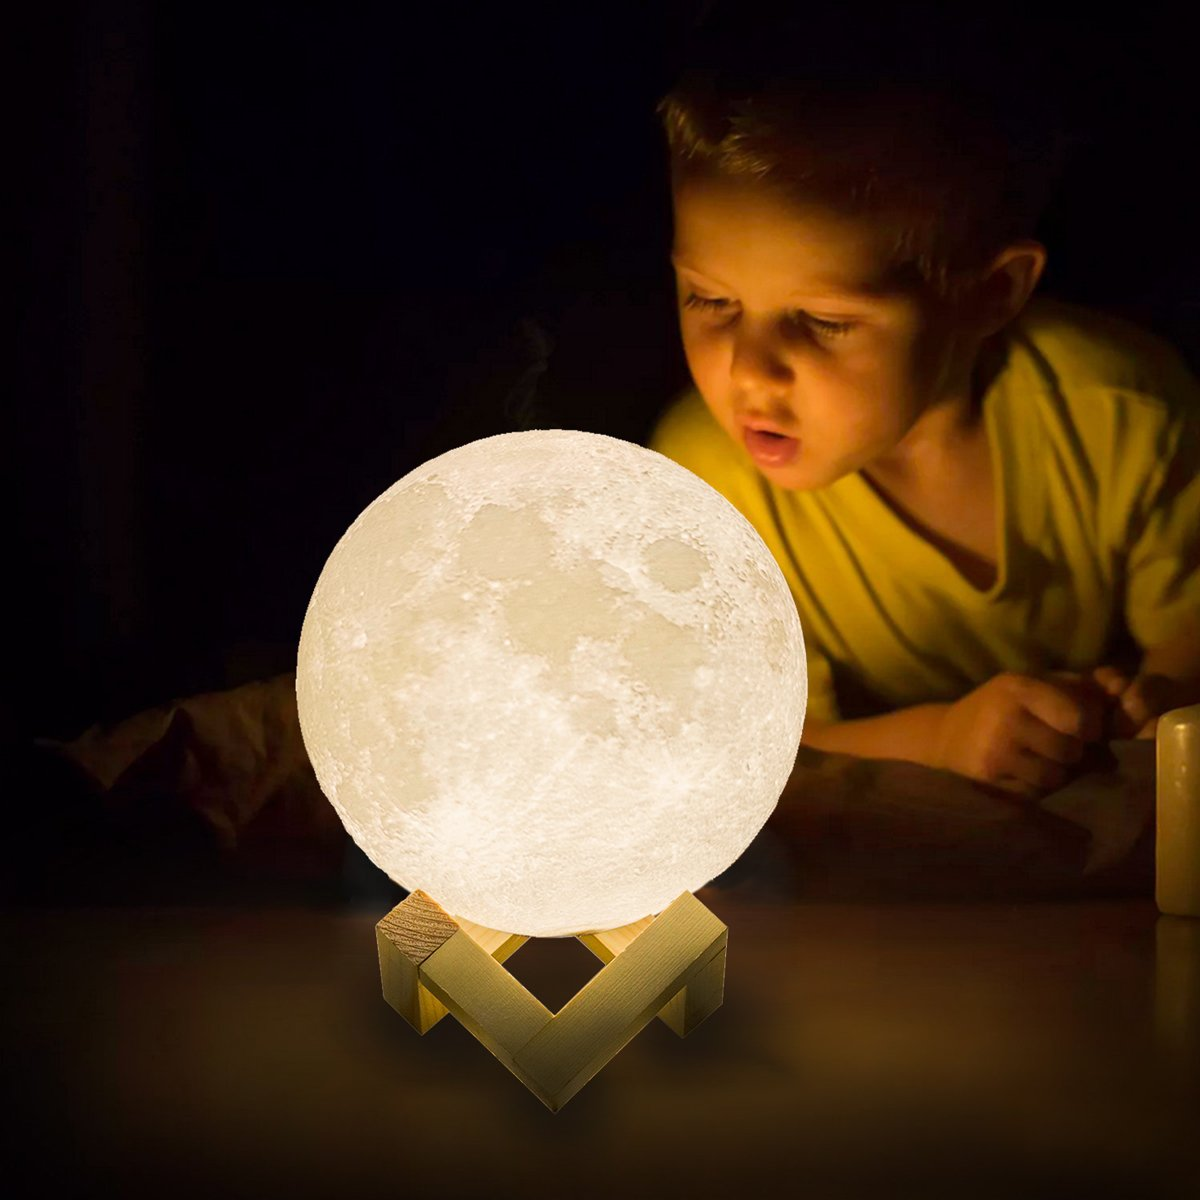 Night Light Moon Lamp Touch Switch LED 3D Print Rechargeable Christmas Lights Outdoor Christmas Decorations For Home Kerst